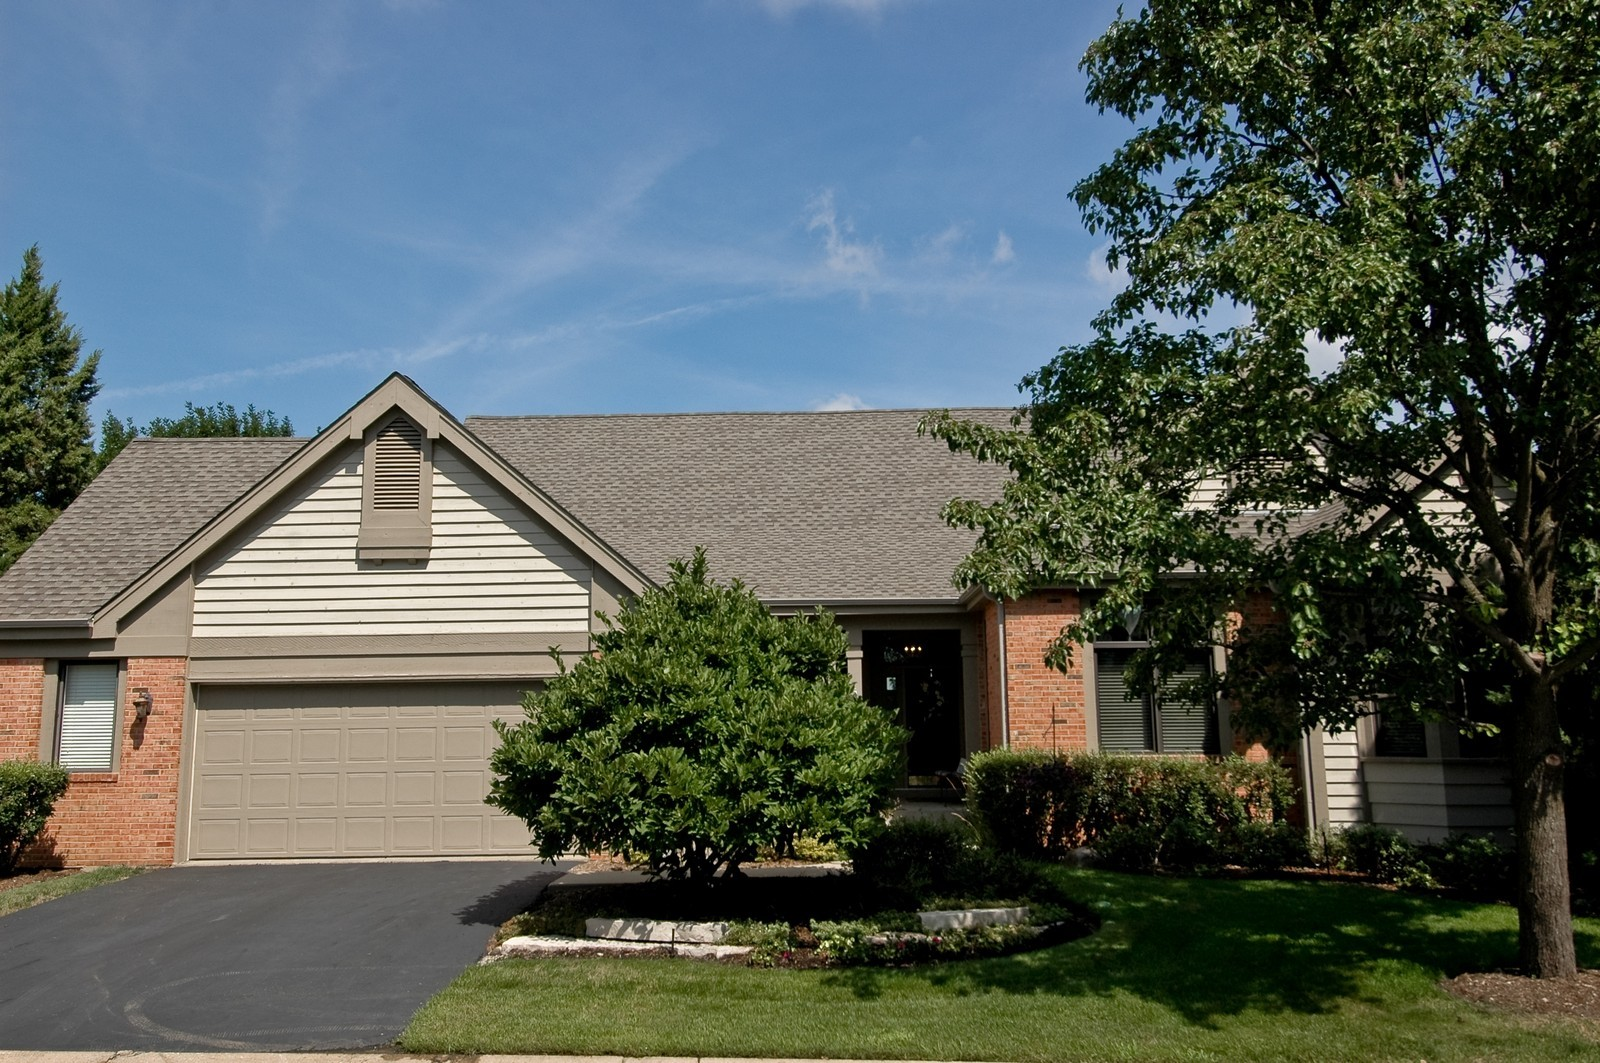 Real Estate Photography - 5 La Costa, Lake in the Hills, IL, 60156 - Front View